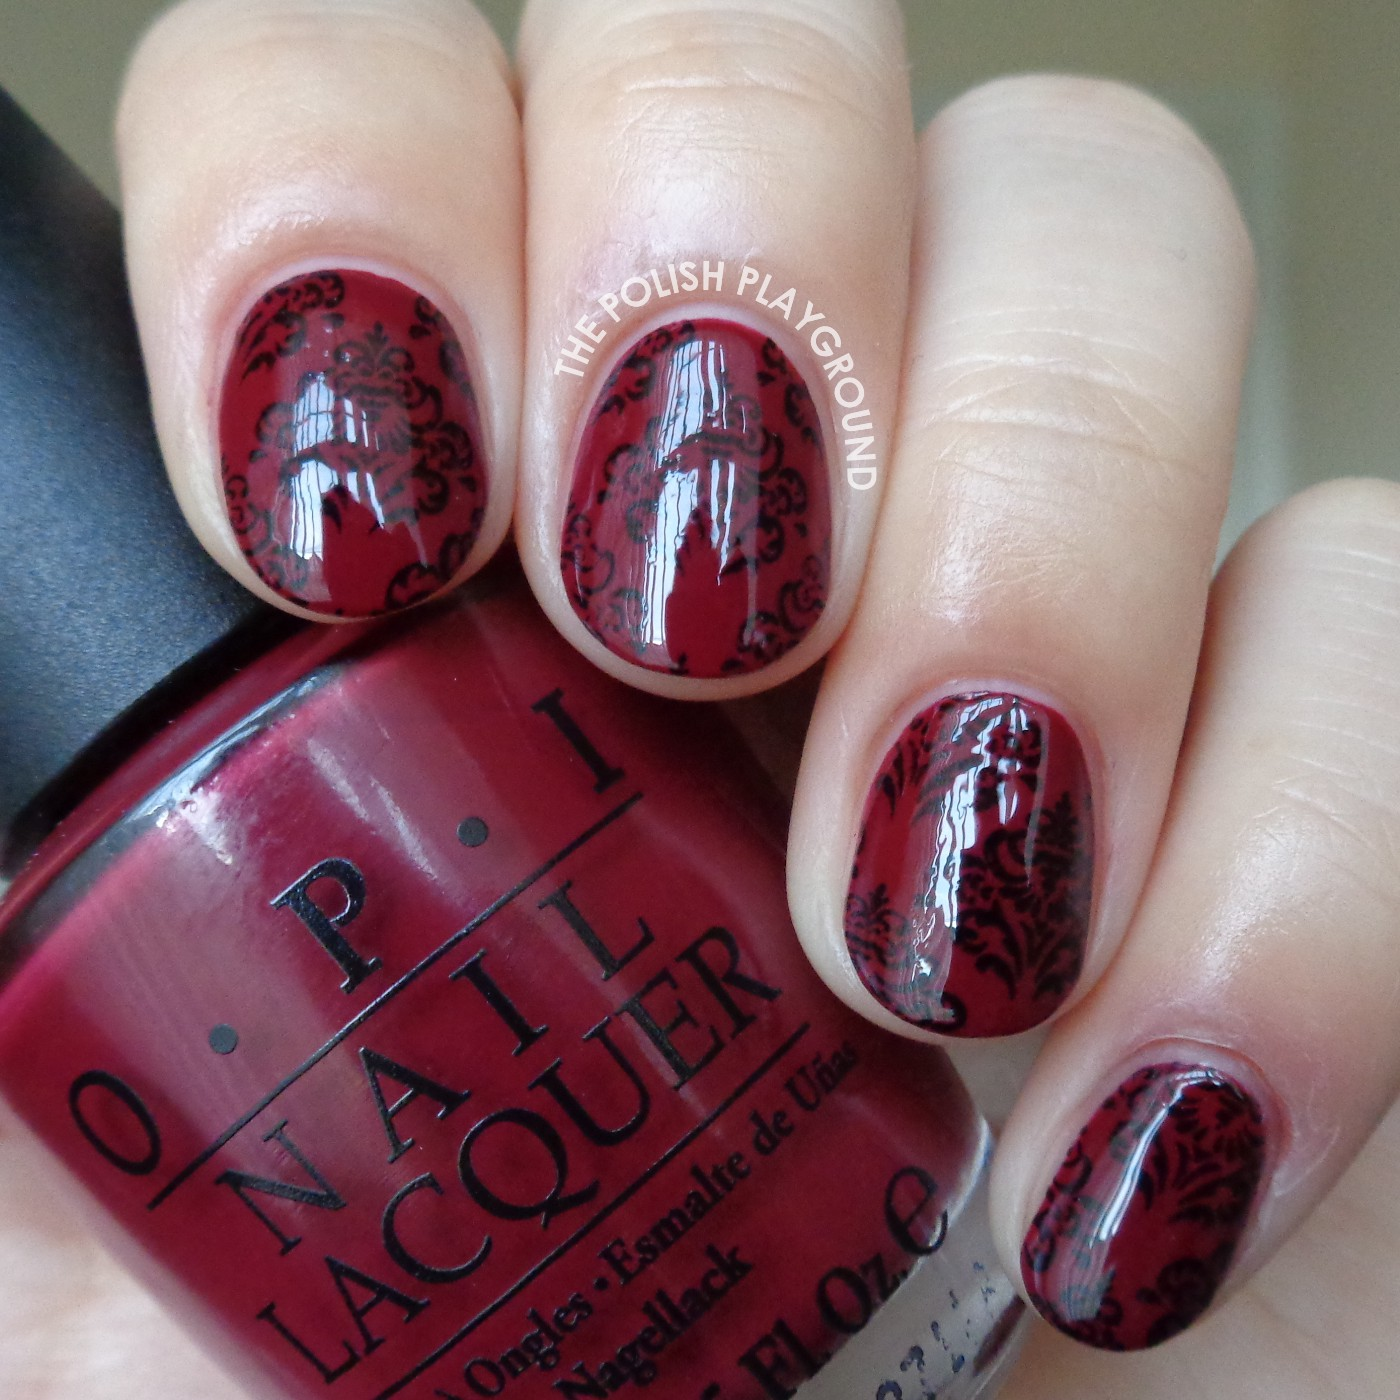 Burgundy Red and Black Vintage Wallpaper Stamping Nail Art